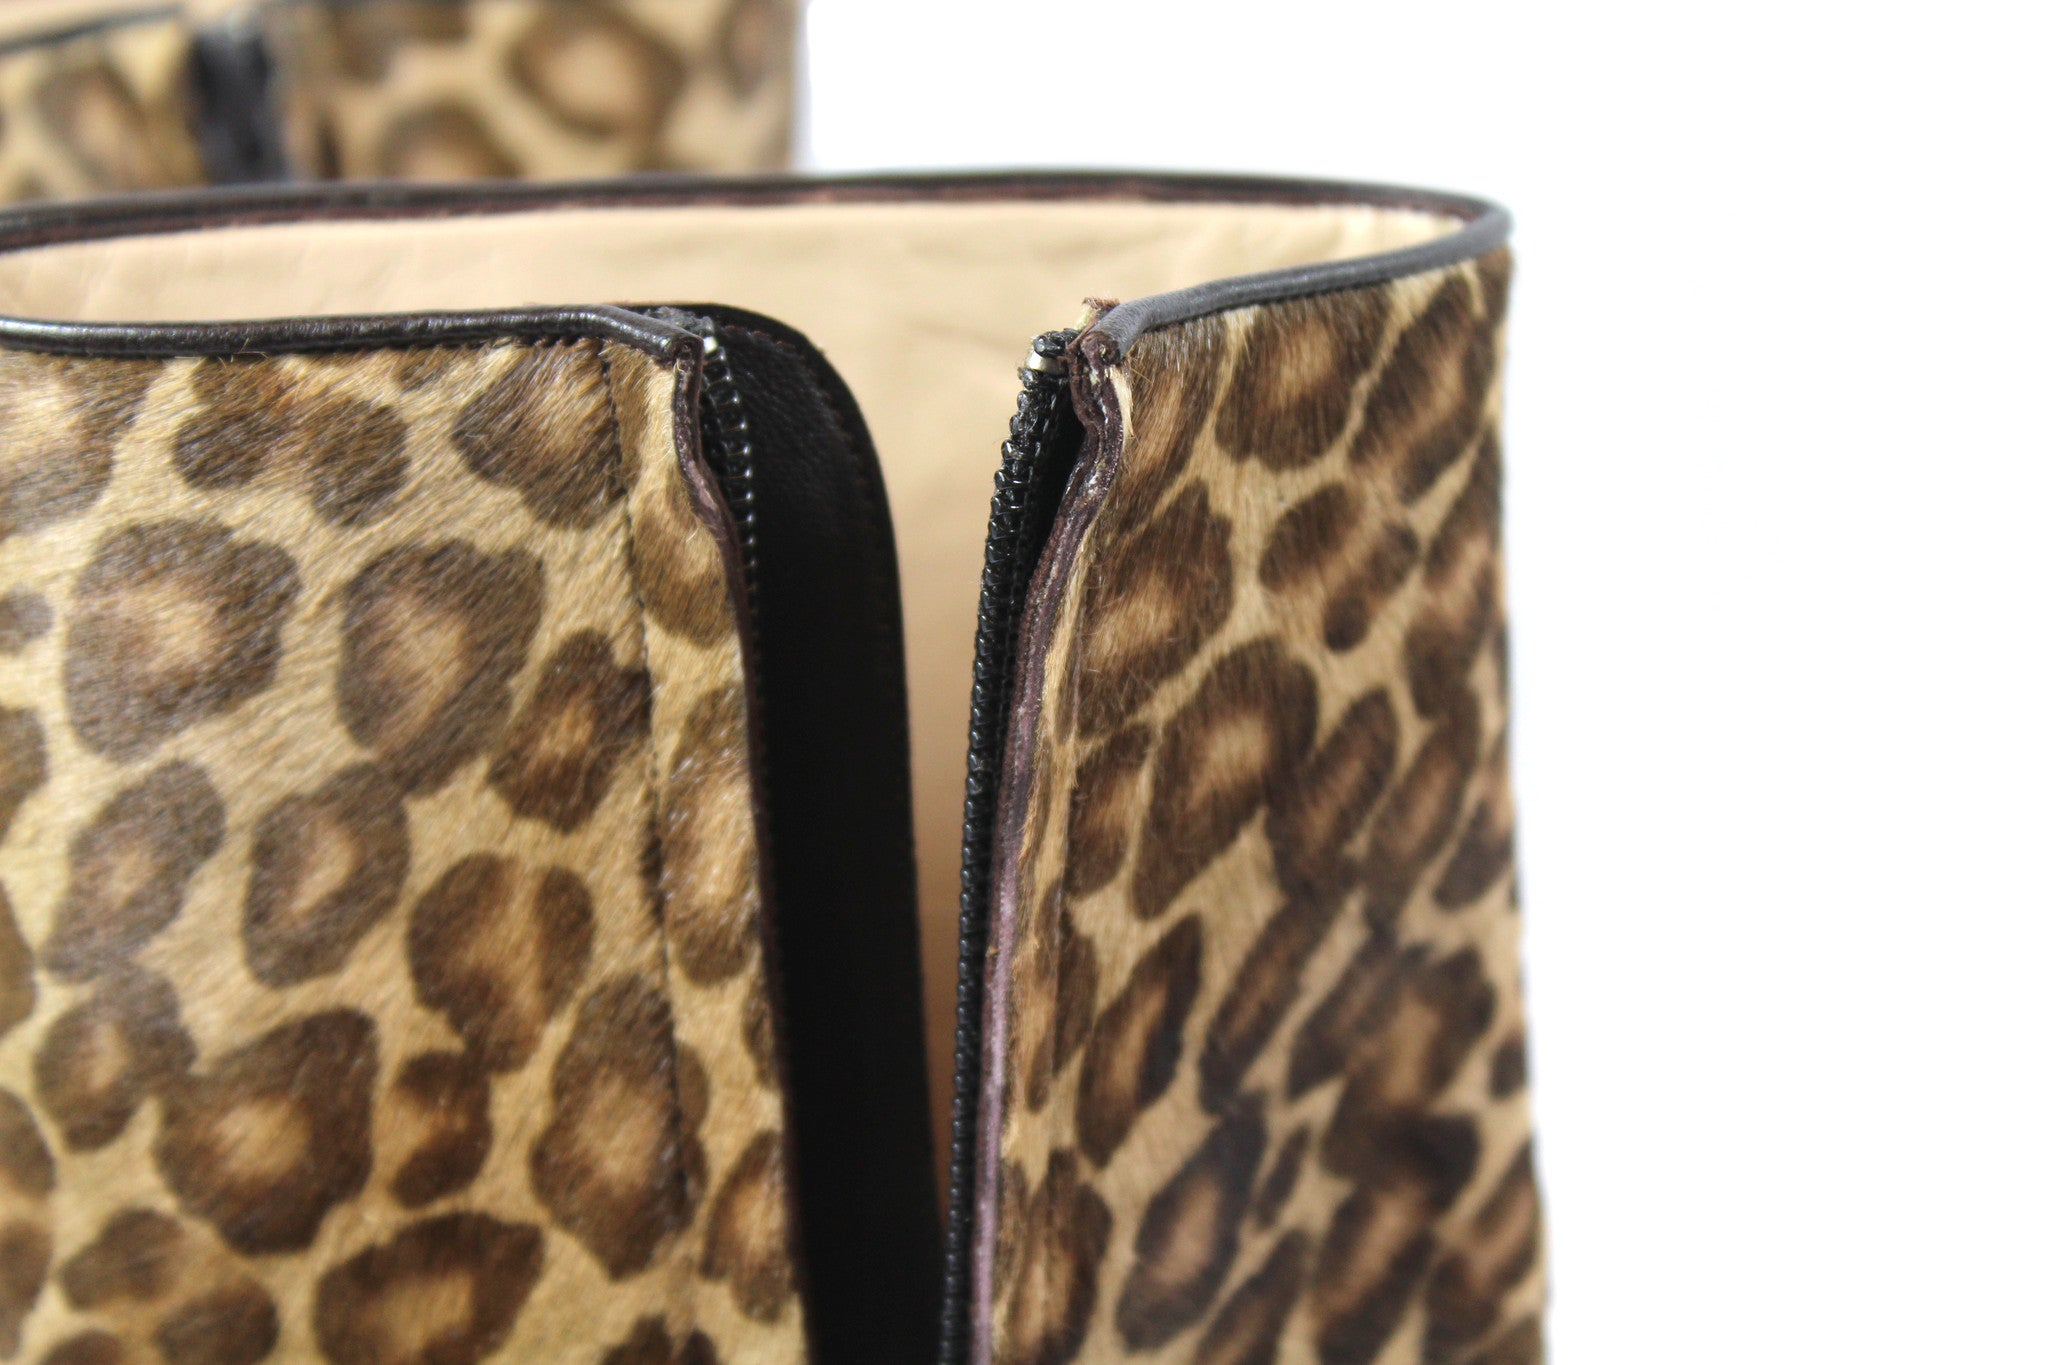 Manolo Blahnik Leopard Calf Hair Ankle Boots (Size 38) - Encore Consignment - 8